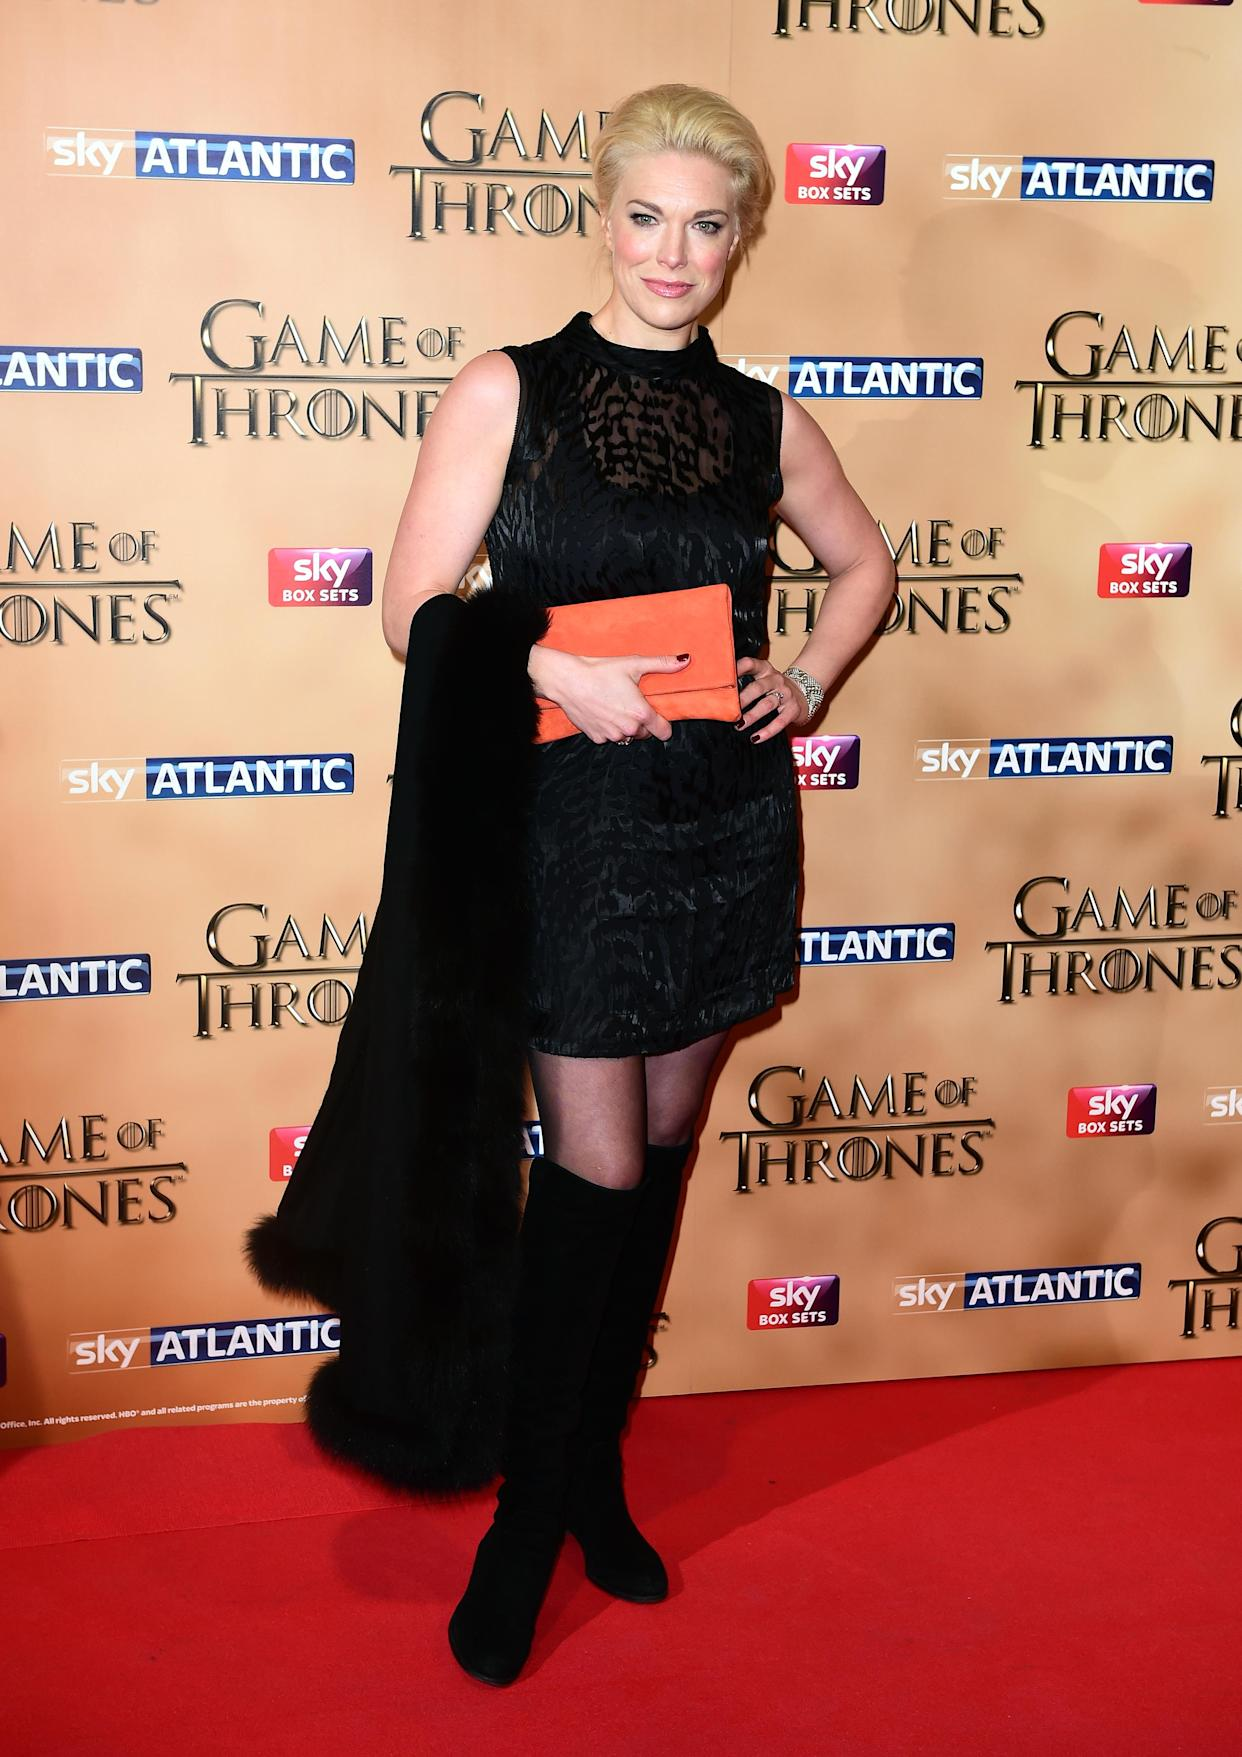 Hannah Waddingham attending the world premiere of the fifth series of Game of Thrones at the Tower of London. PRESS ASSOCIATION Photo. Picture date: Wednesday March 18, 2015. See PA story SHOWBIZ Thrones. Photo credit should read: Ian West/PA Wire